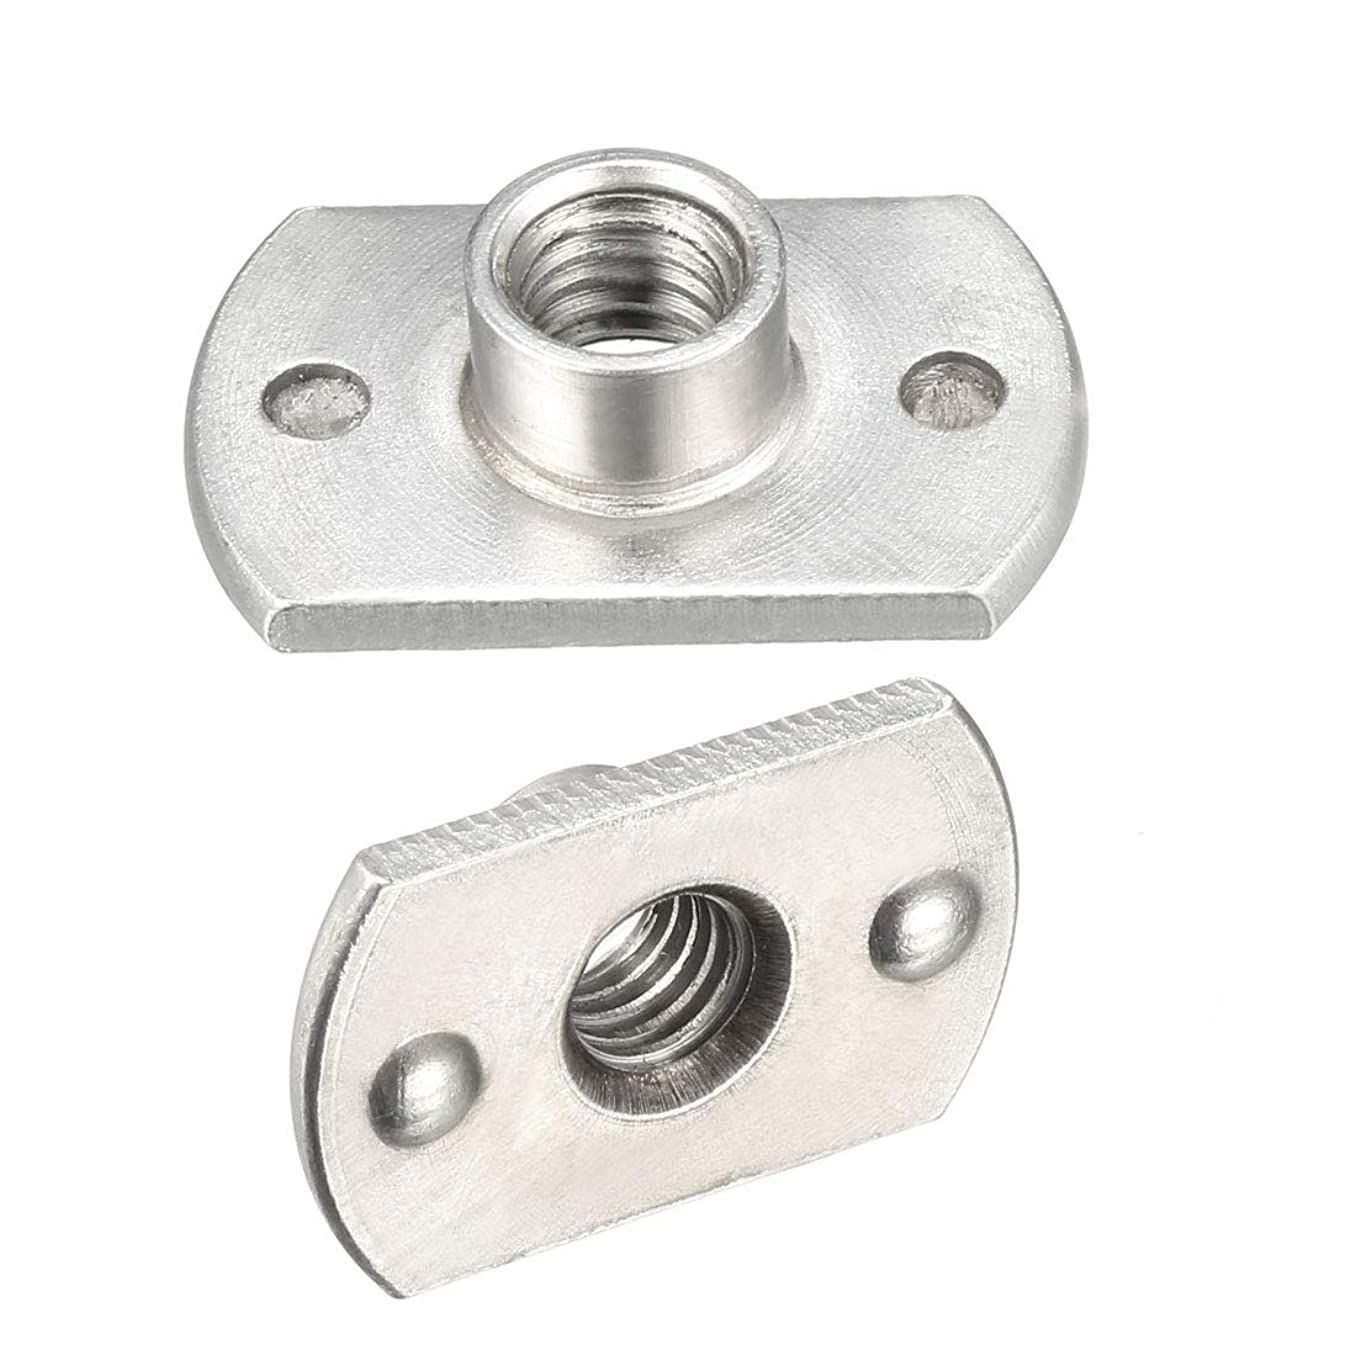 uxcell M6 Carbon Steel Slab Base T-Shaped 2 Projection Weld Nuts Pack of 10